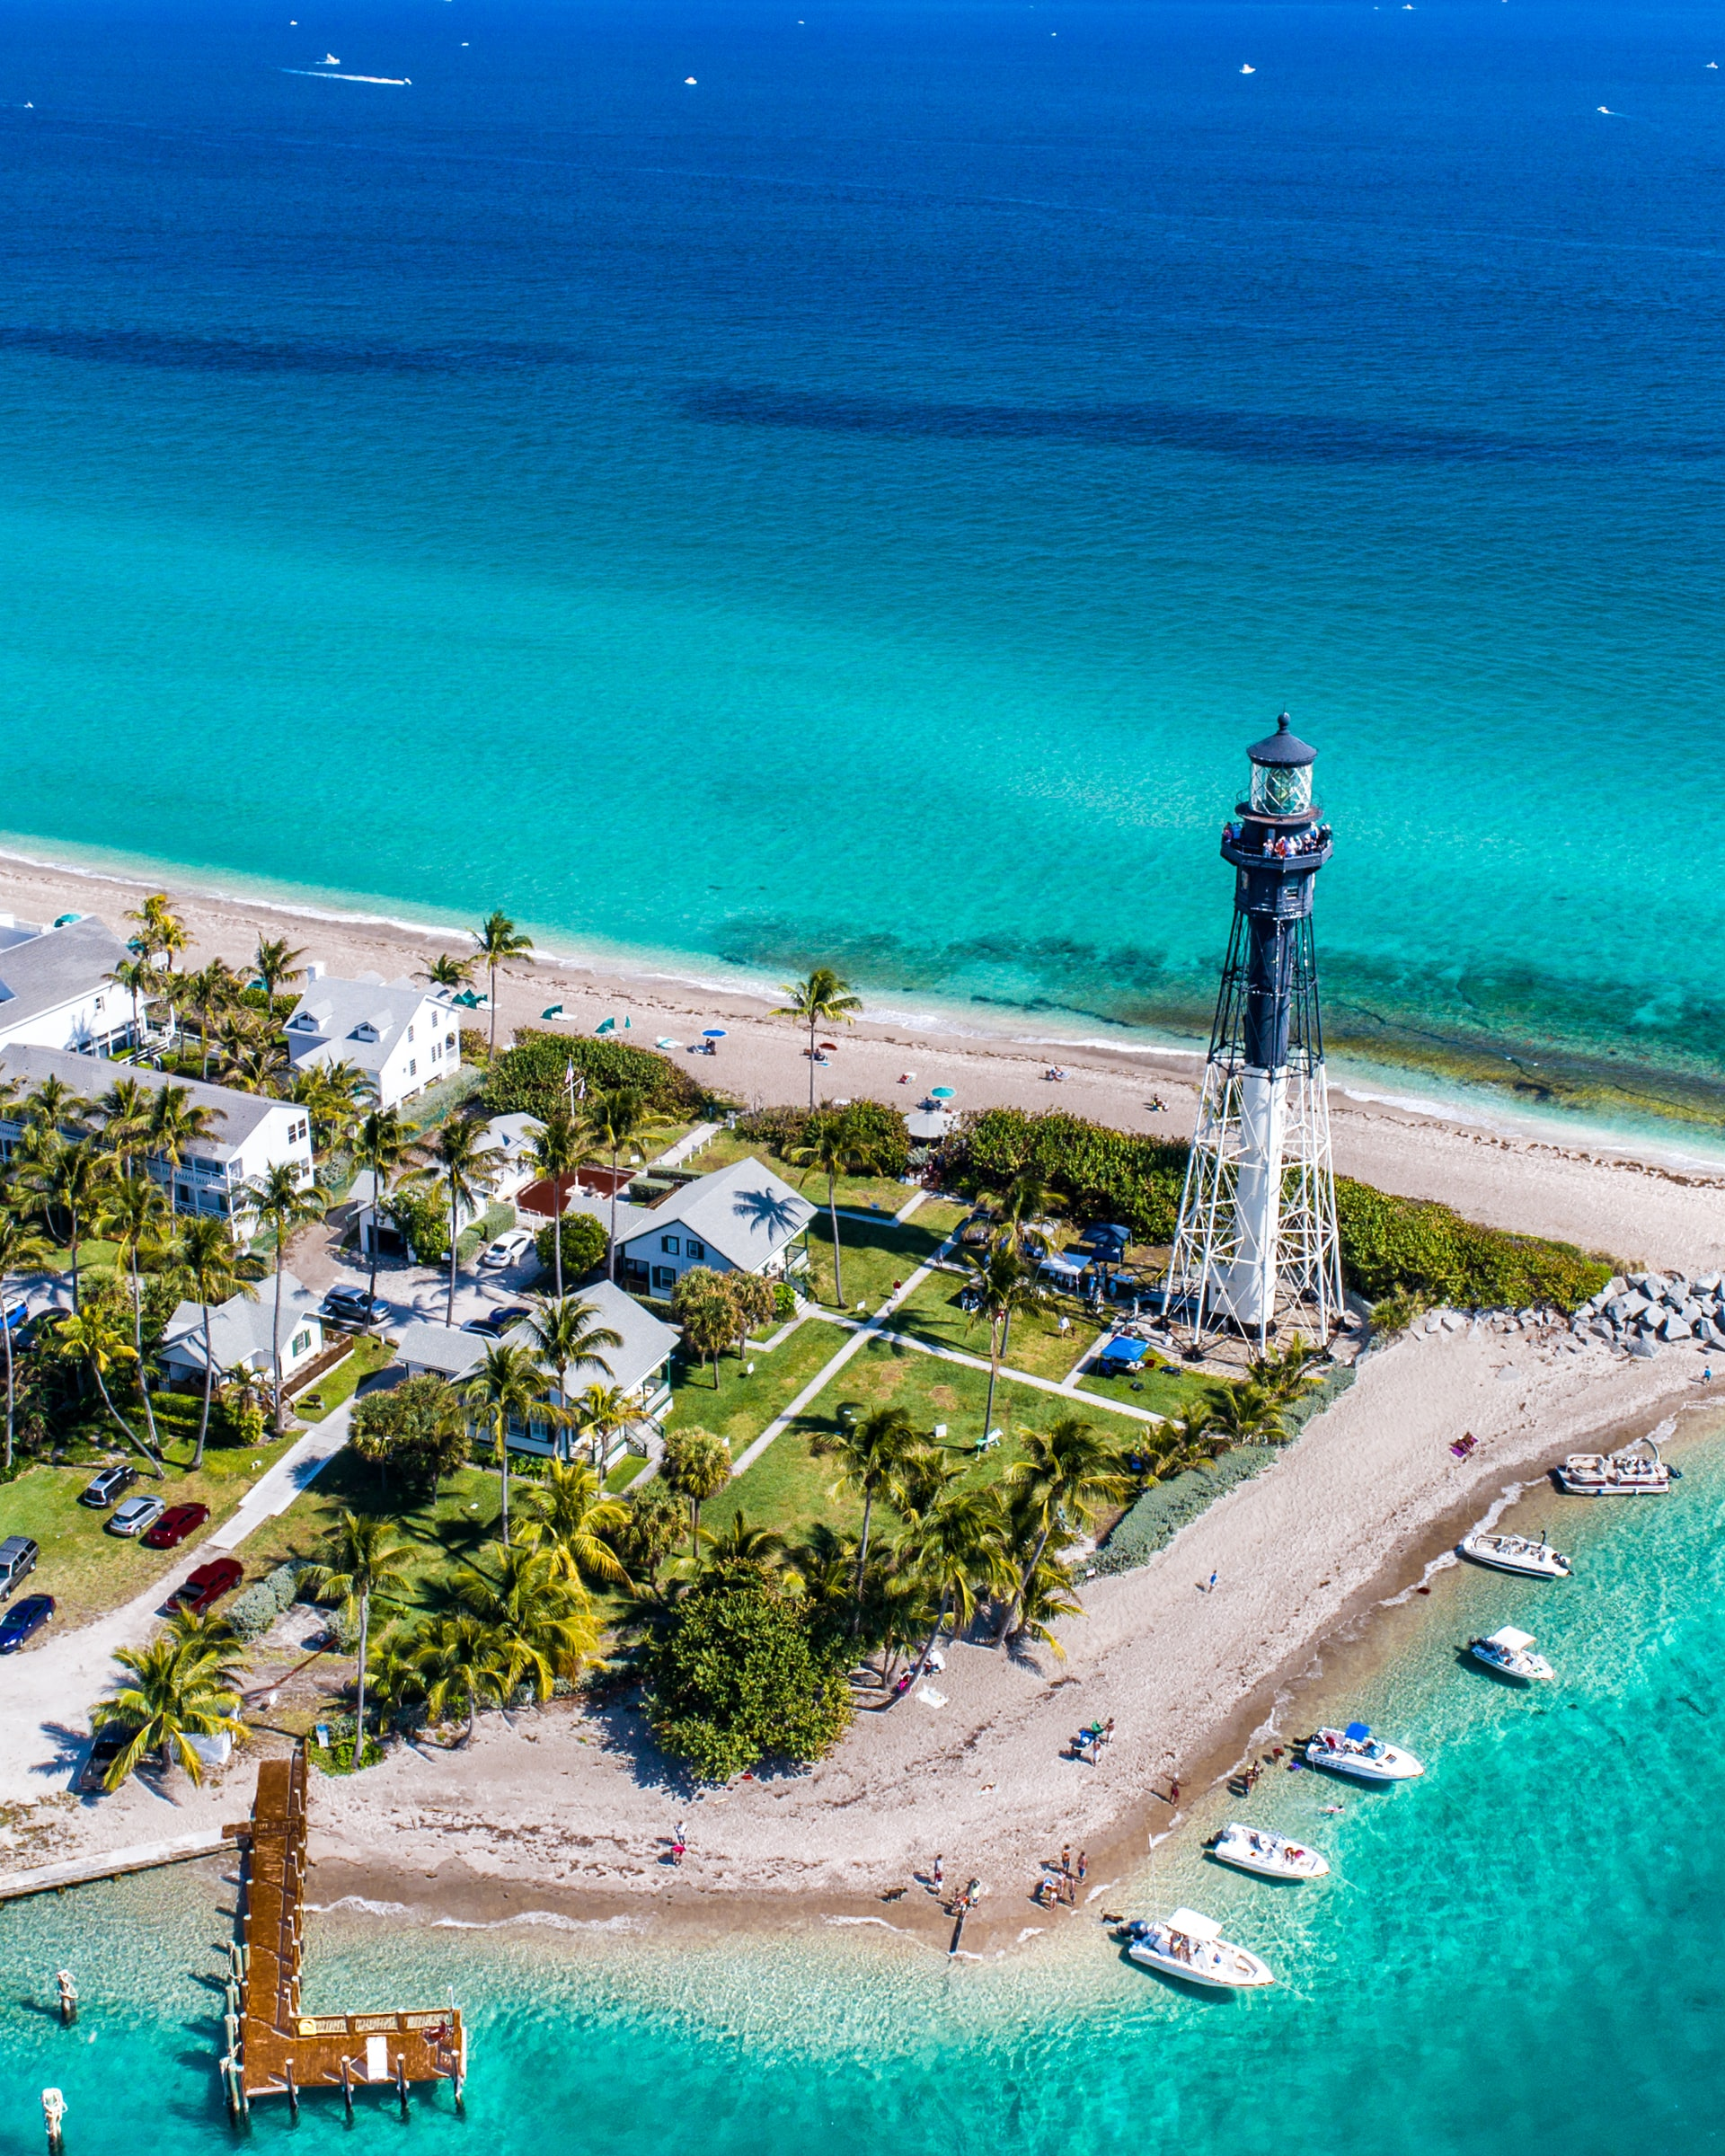 Best Beaches to Visit in North America